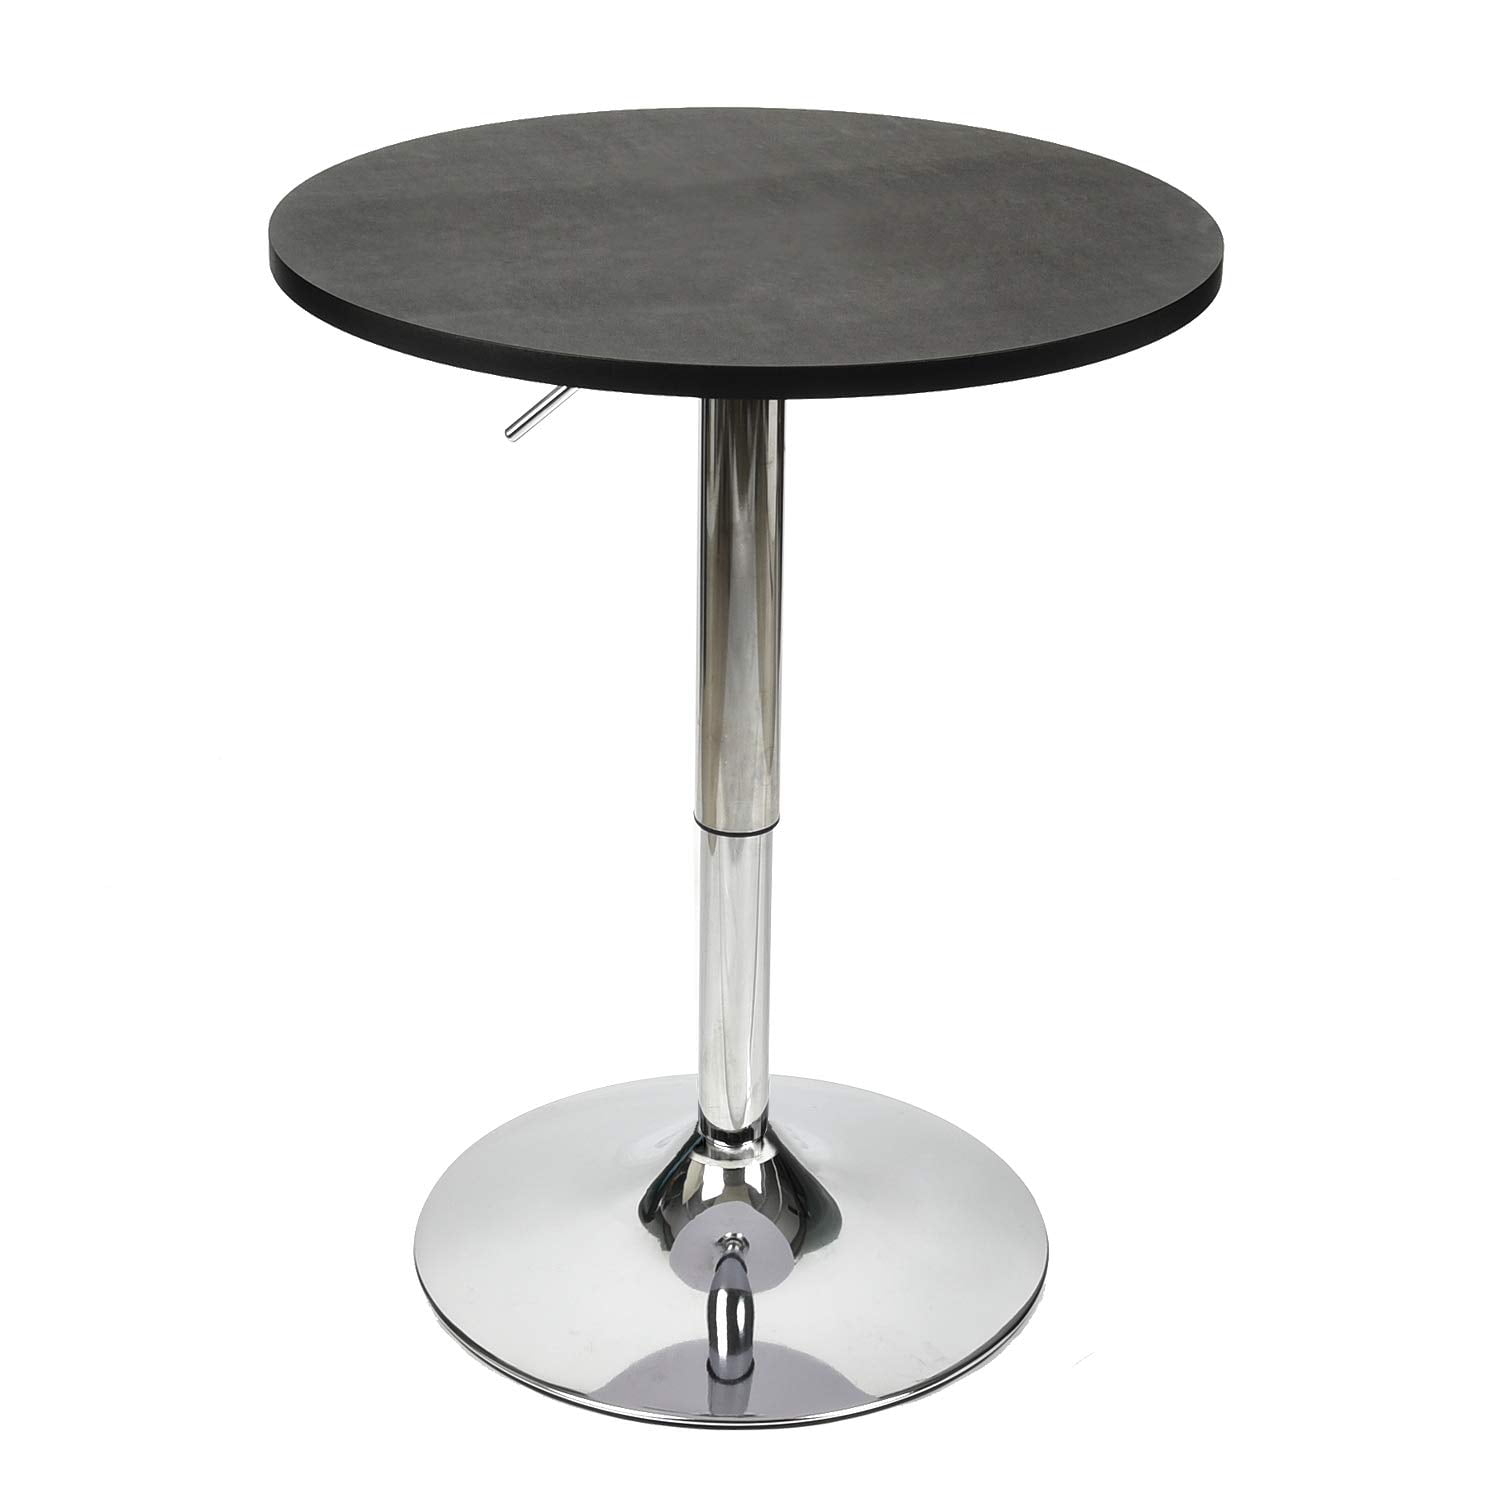 Elecwish 35 Inches Height Modern Round Bar Table Adjustable Height Chrome Metal And Wood Cocktail Dinner Pub Table Mdf Top 360 Swivel Furniture Walmart Com Walmart Com